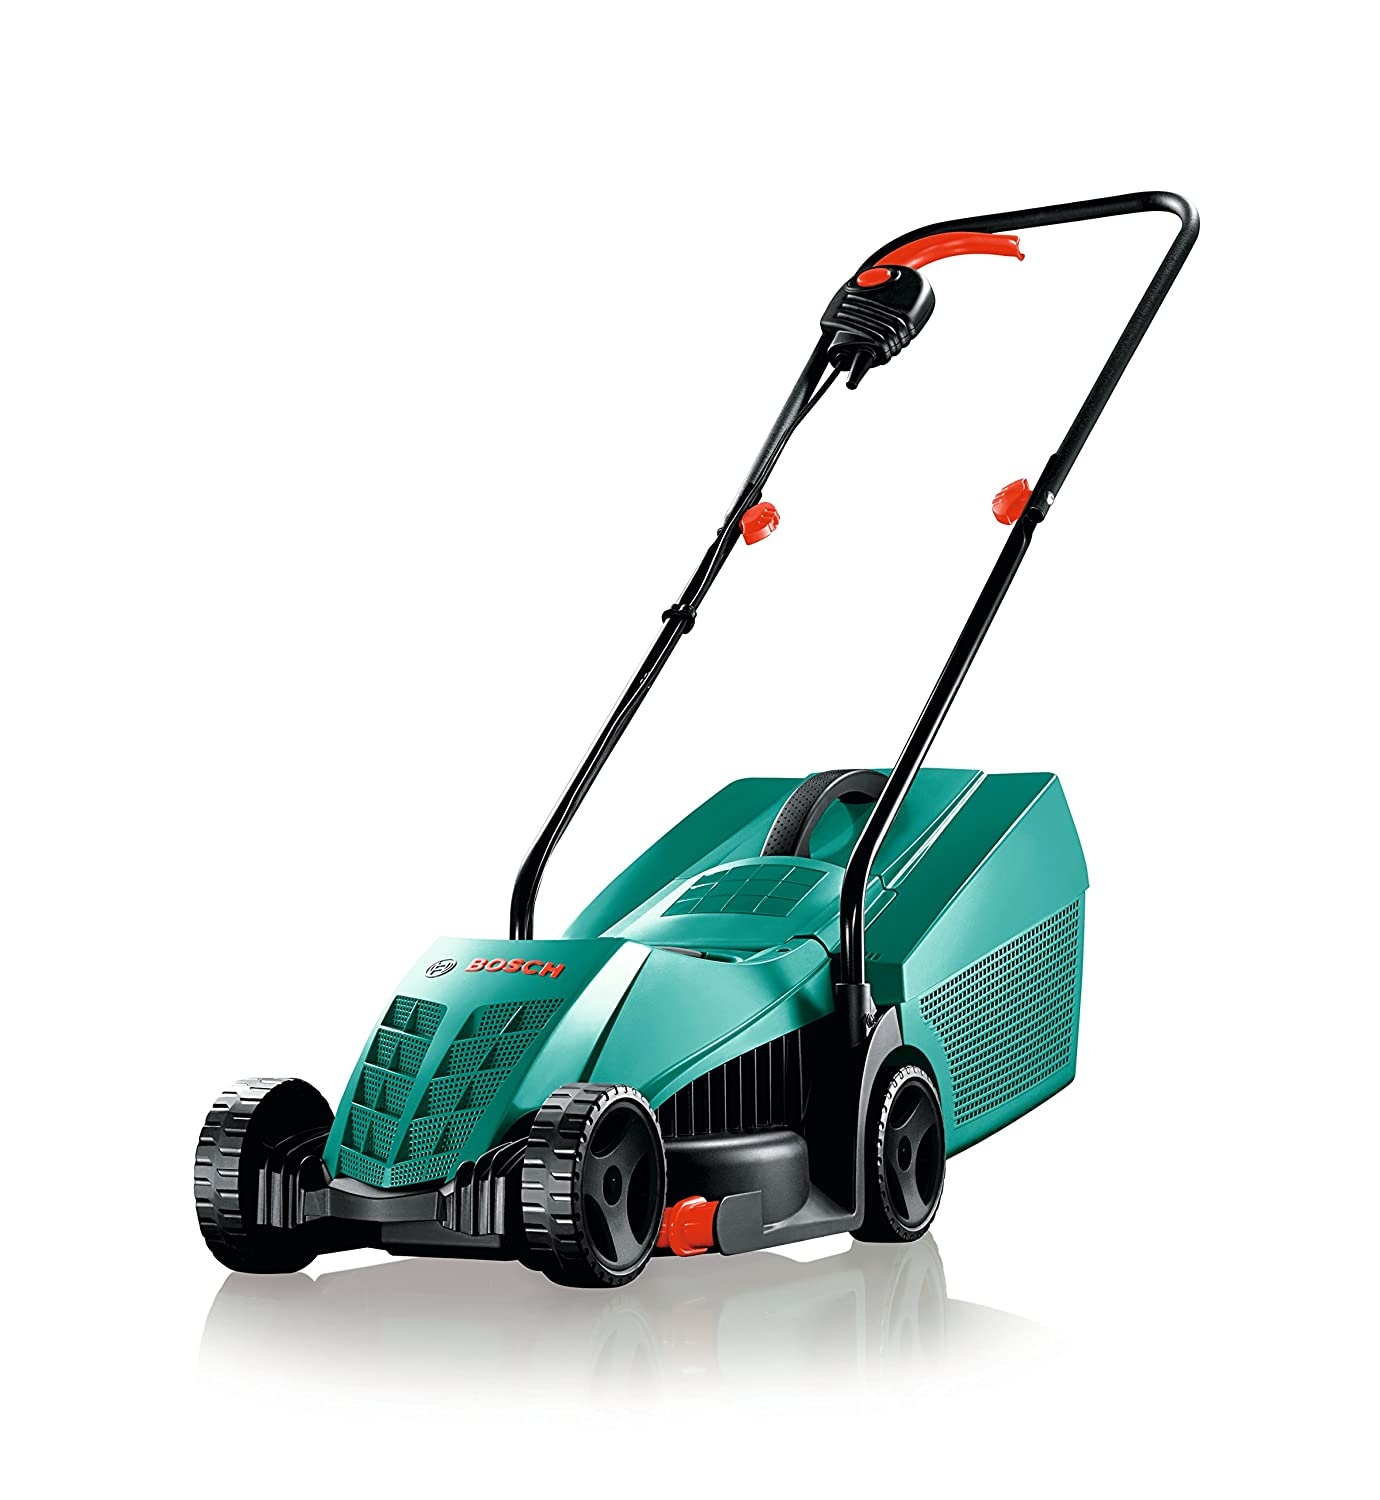 Bosch Rotak 32-12 Electric Rotary Lawnmower with 32 cm Cutting Width 06008A6078